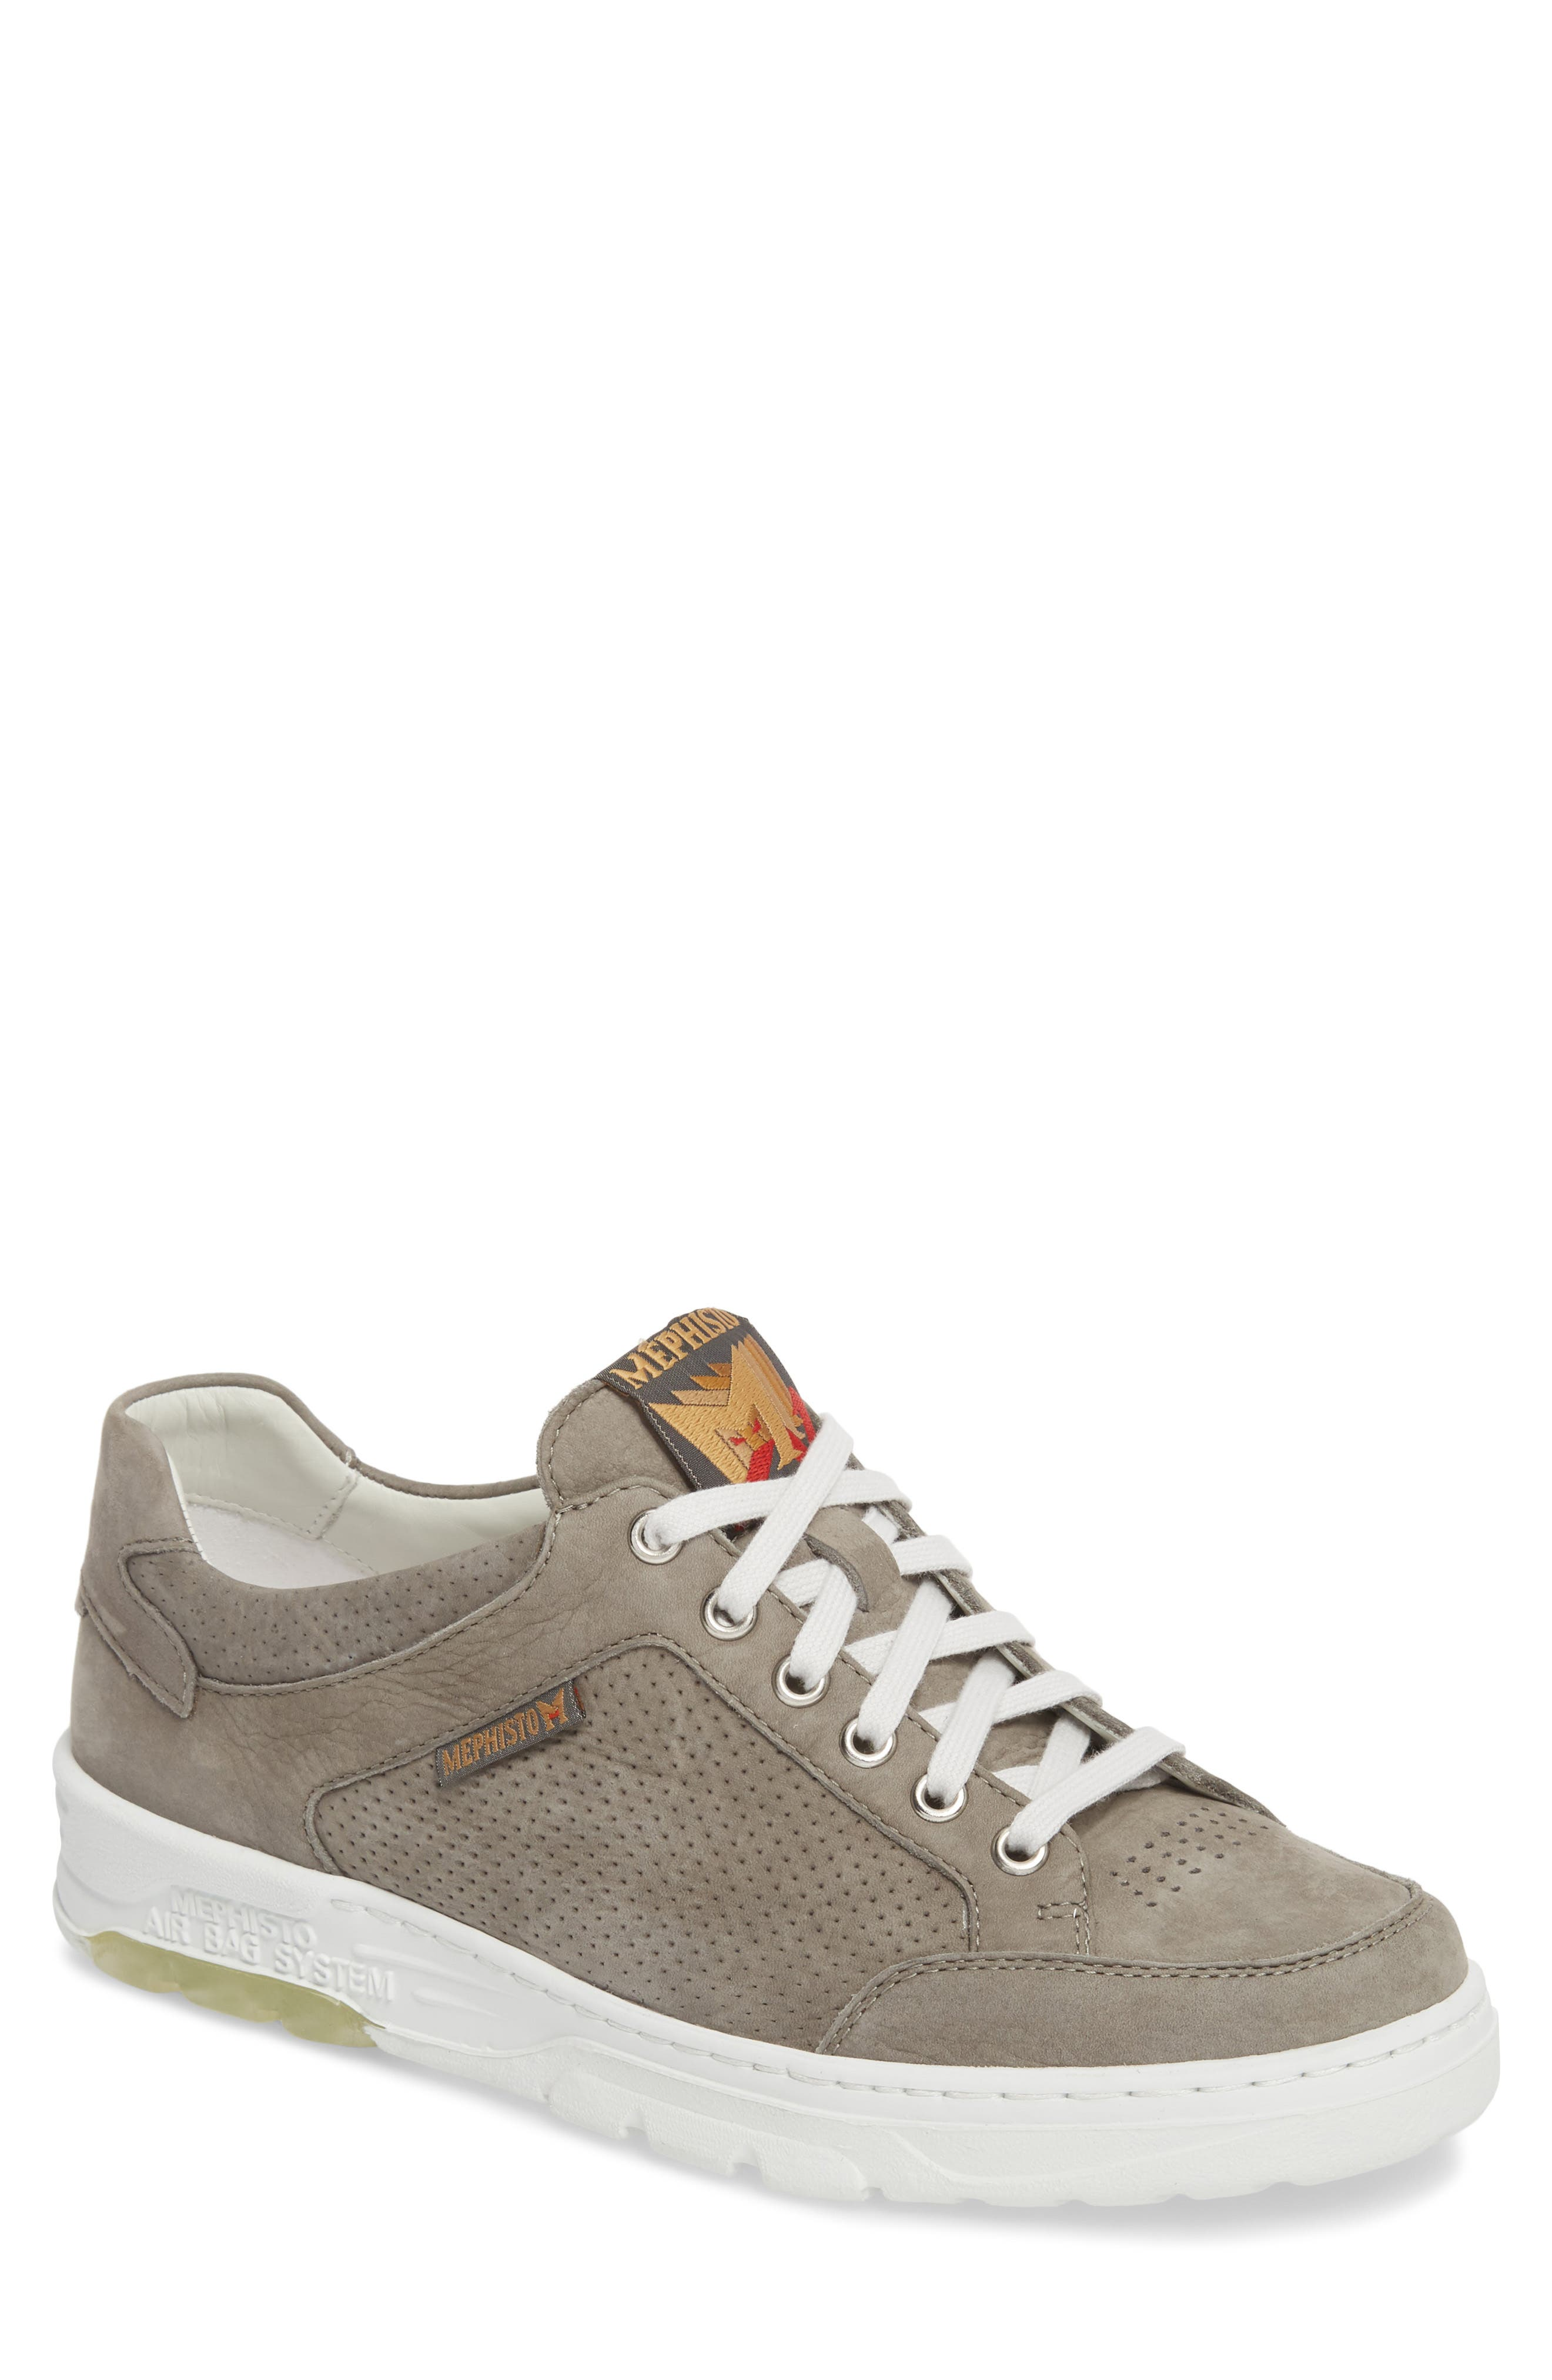 MEPHISTO,                             Mathias Perforated Sneaker,                             Main thumbnail 1, color,                             031